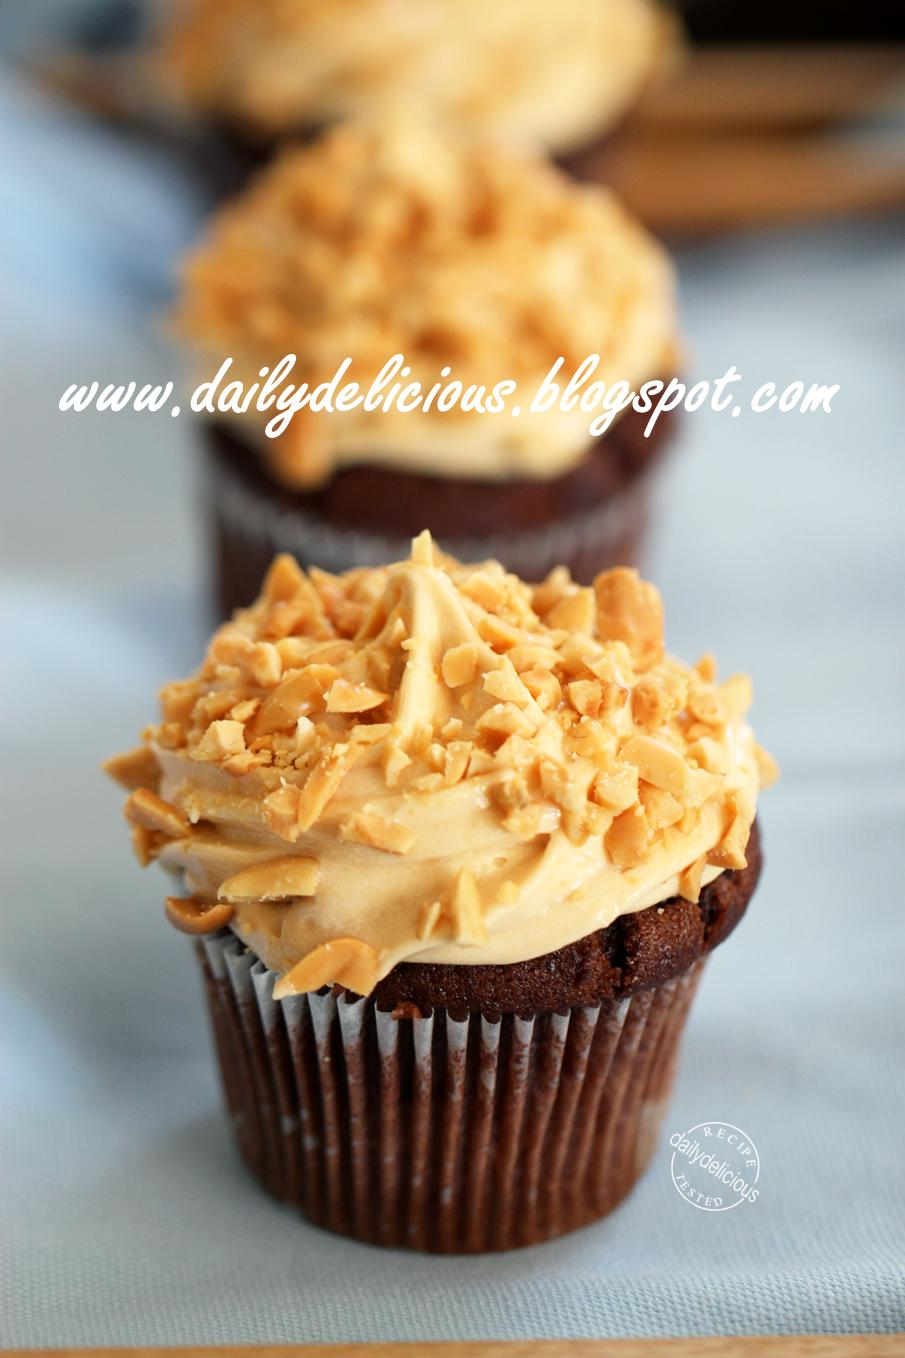 Dailydelicious Peanut Butter Chocolate Cupcakes